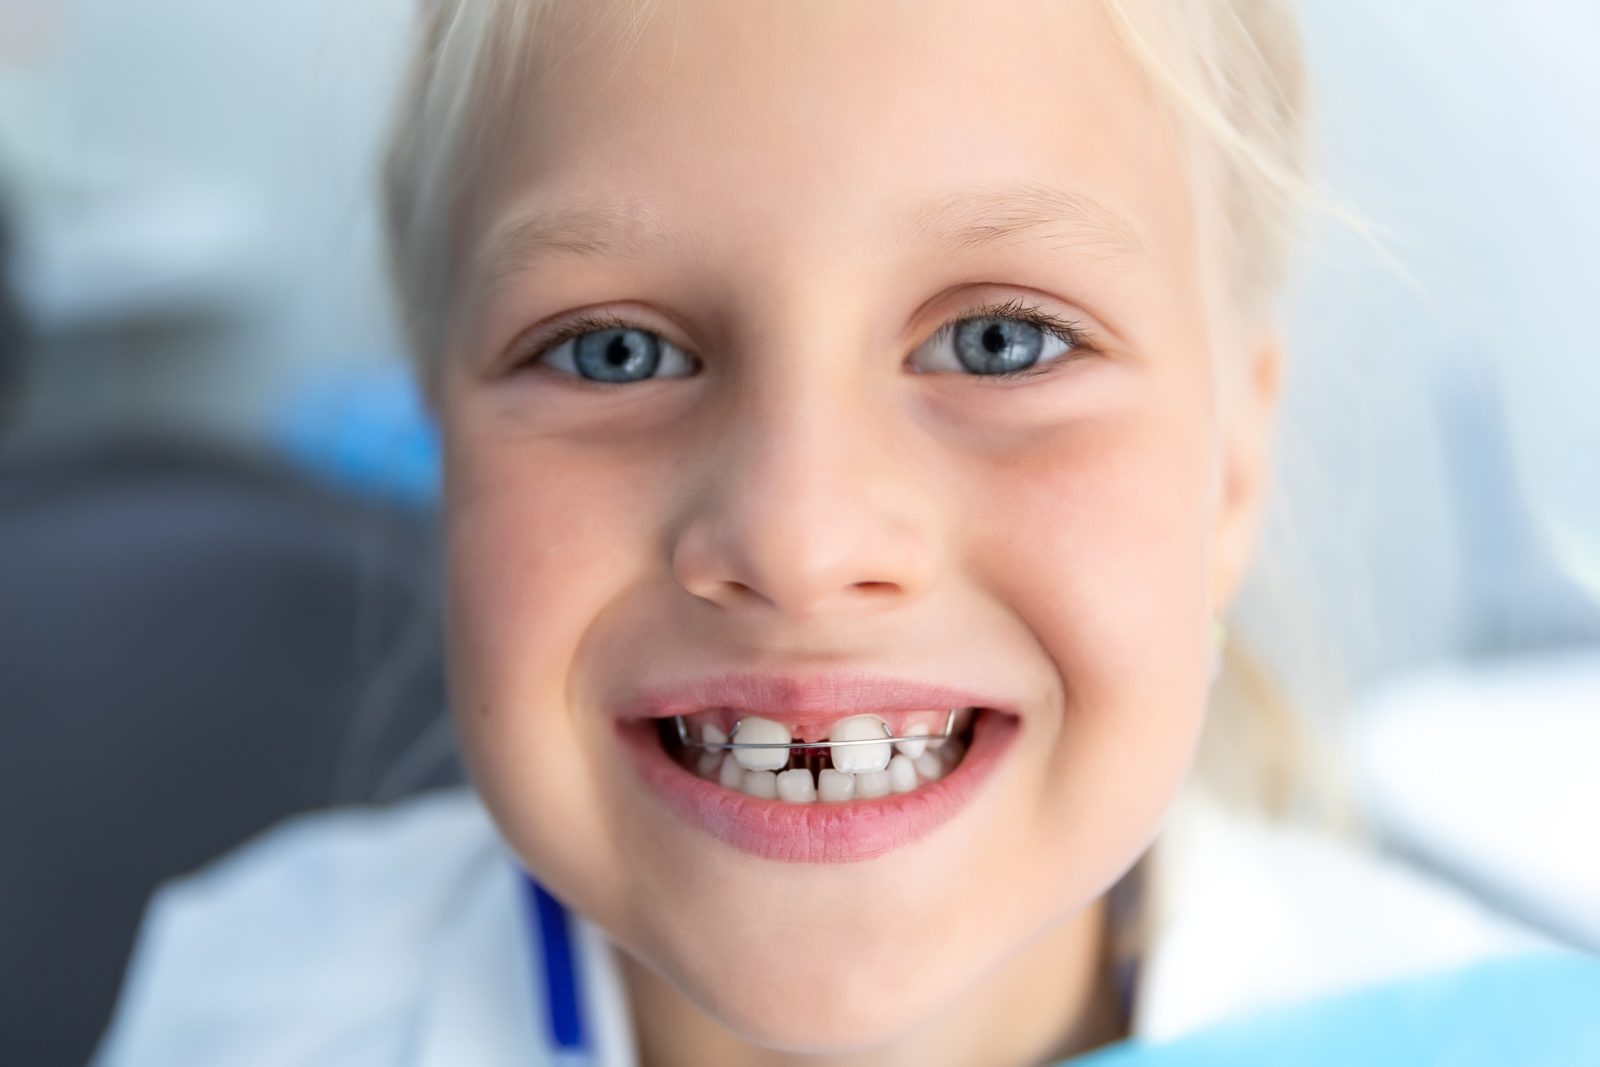 young girl with large gap between her teeth wearing an orthodontic appliance